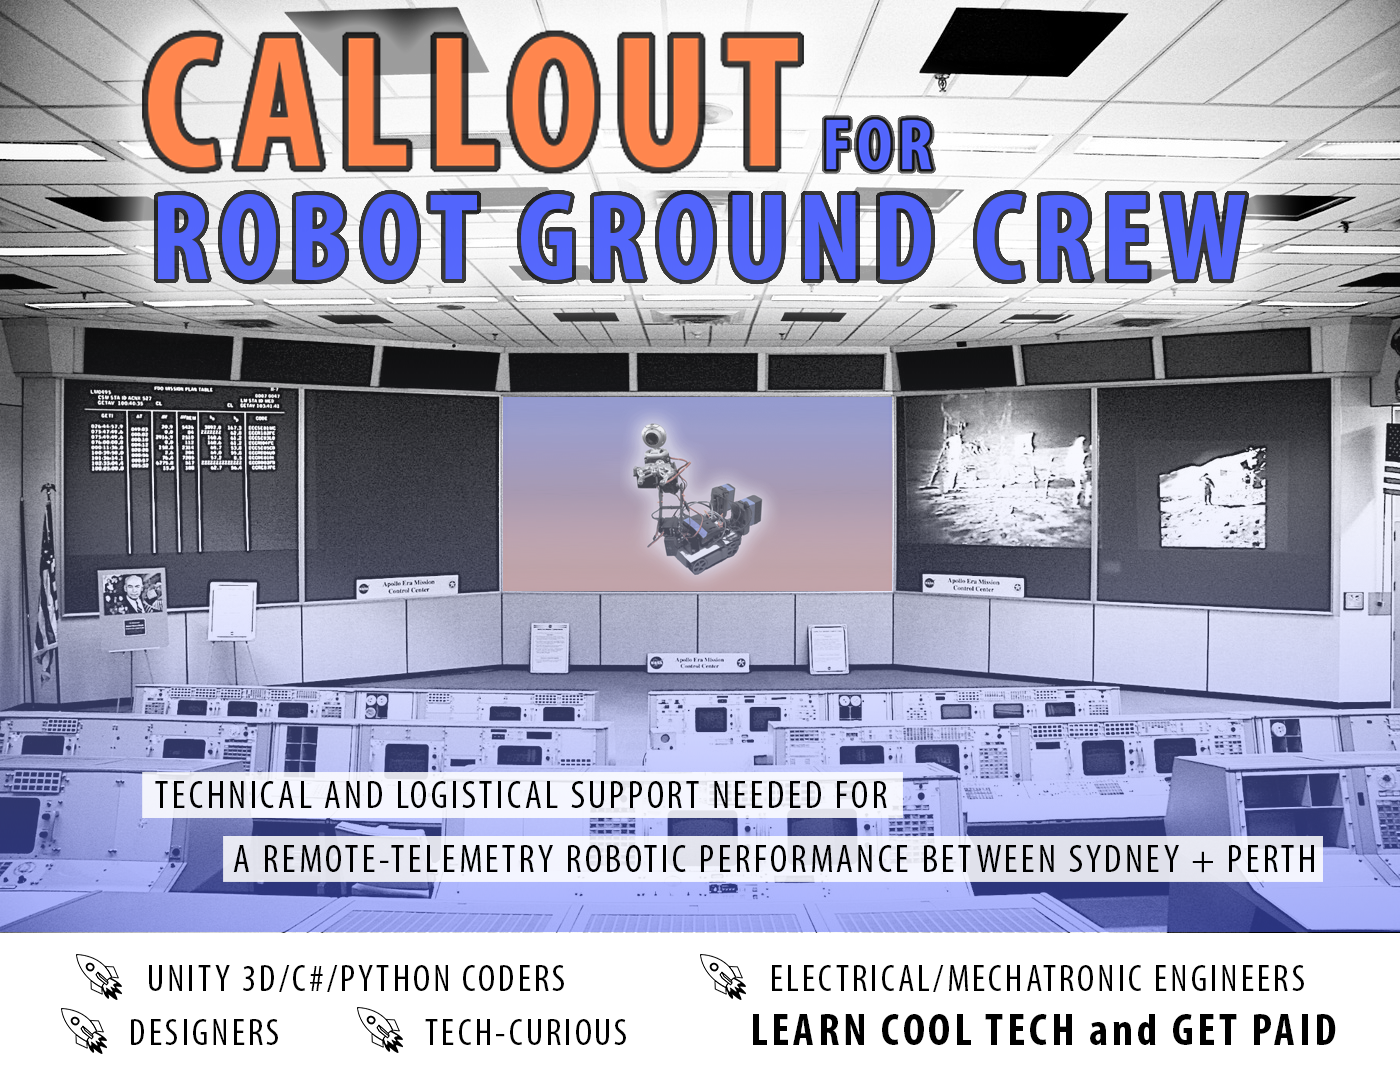 Callout for project Ground Crew